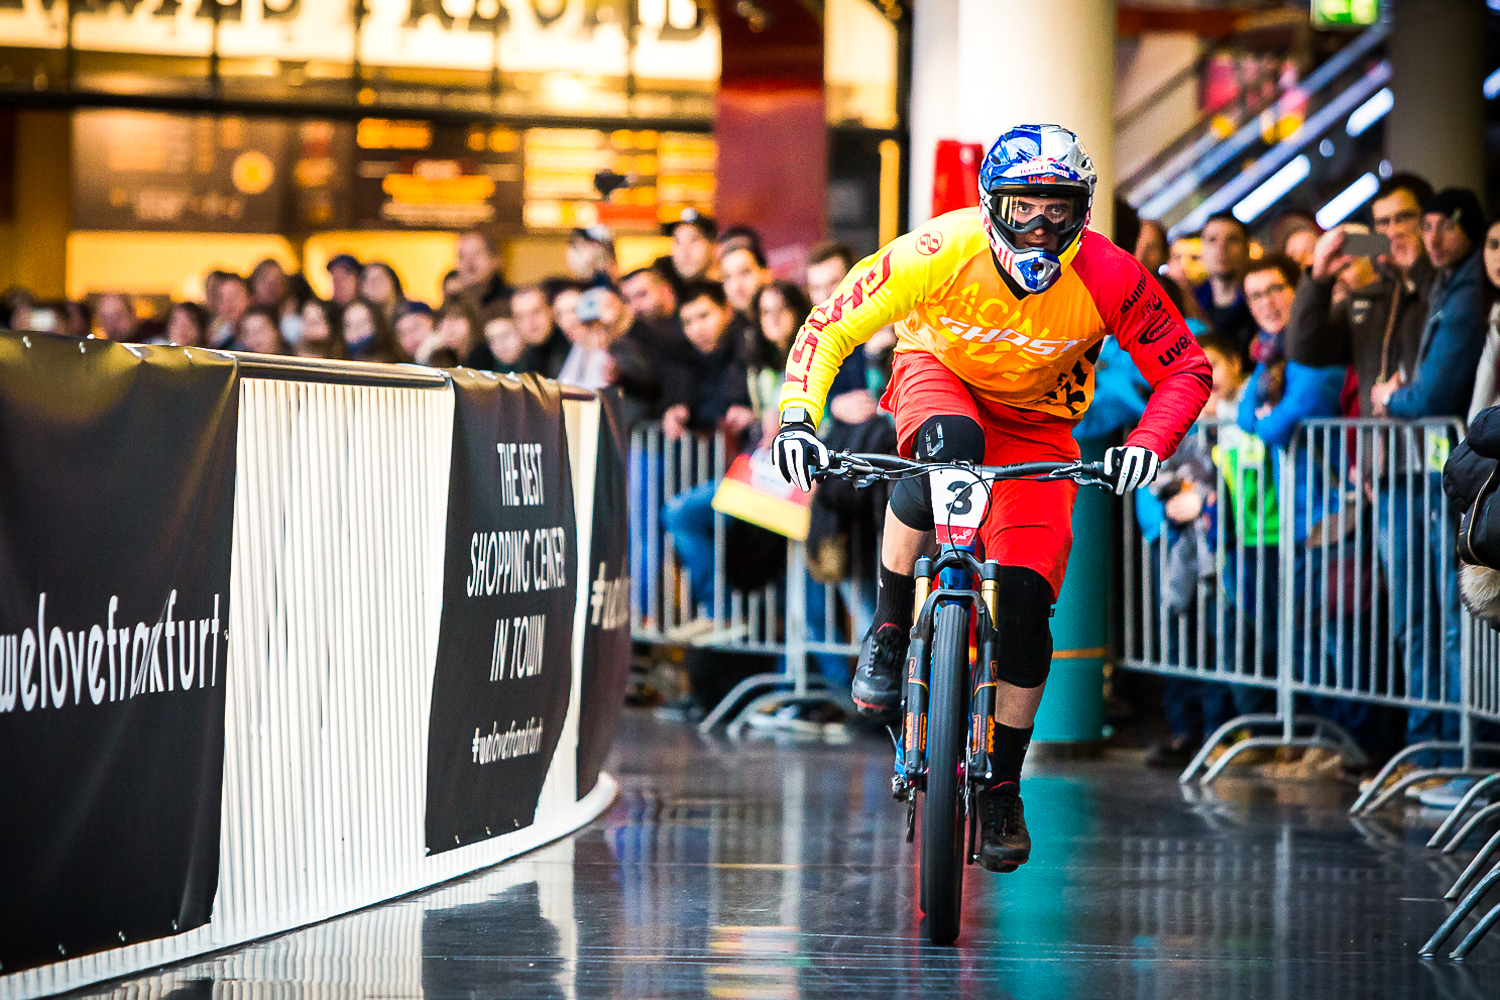 Michal_Prokop_at_DownMall_Race_pic_by_Rick_Schubert